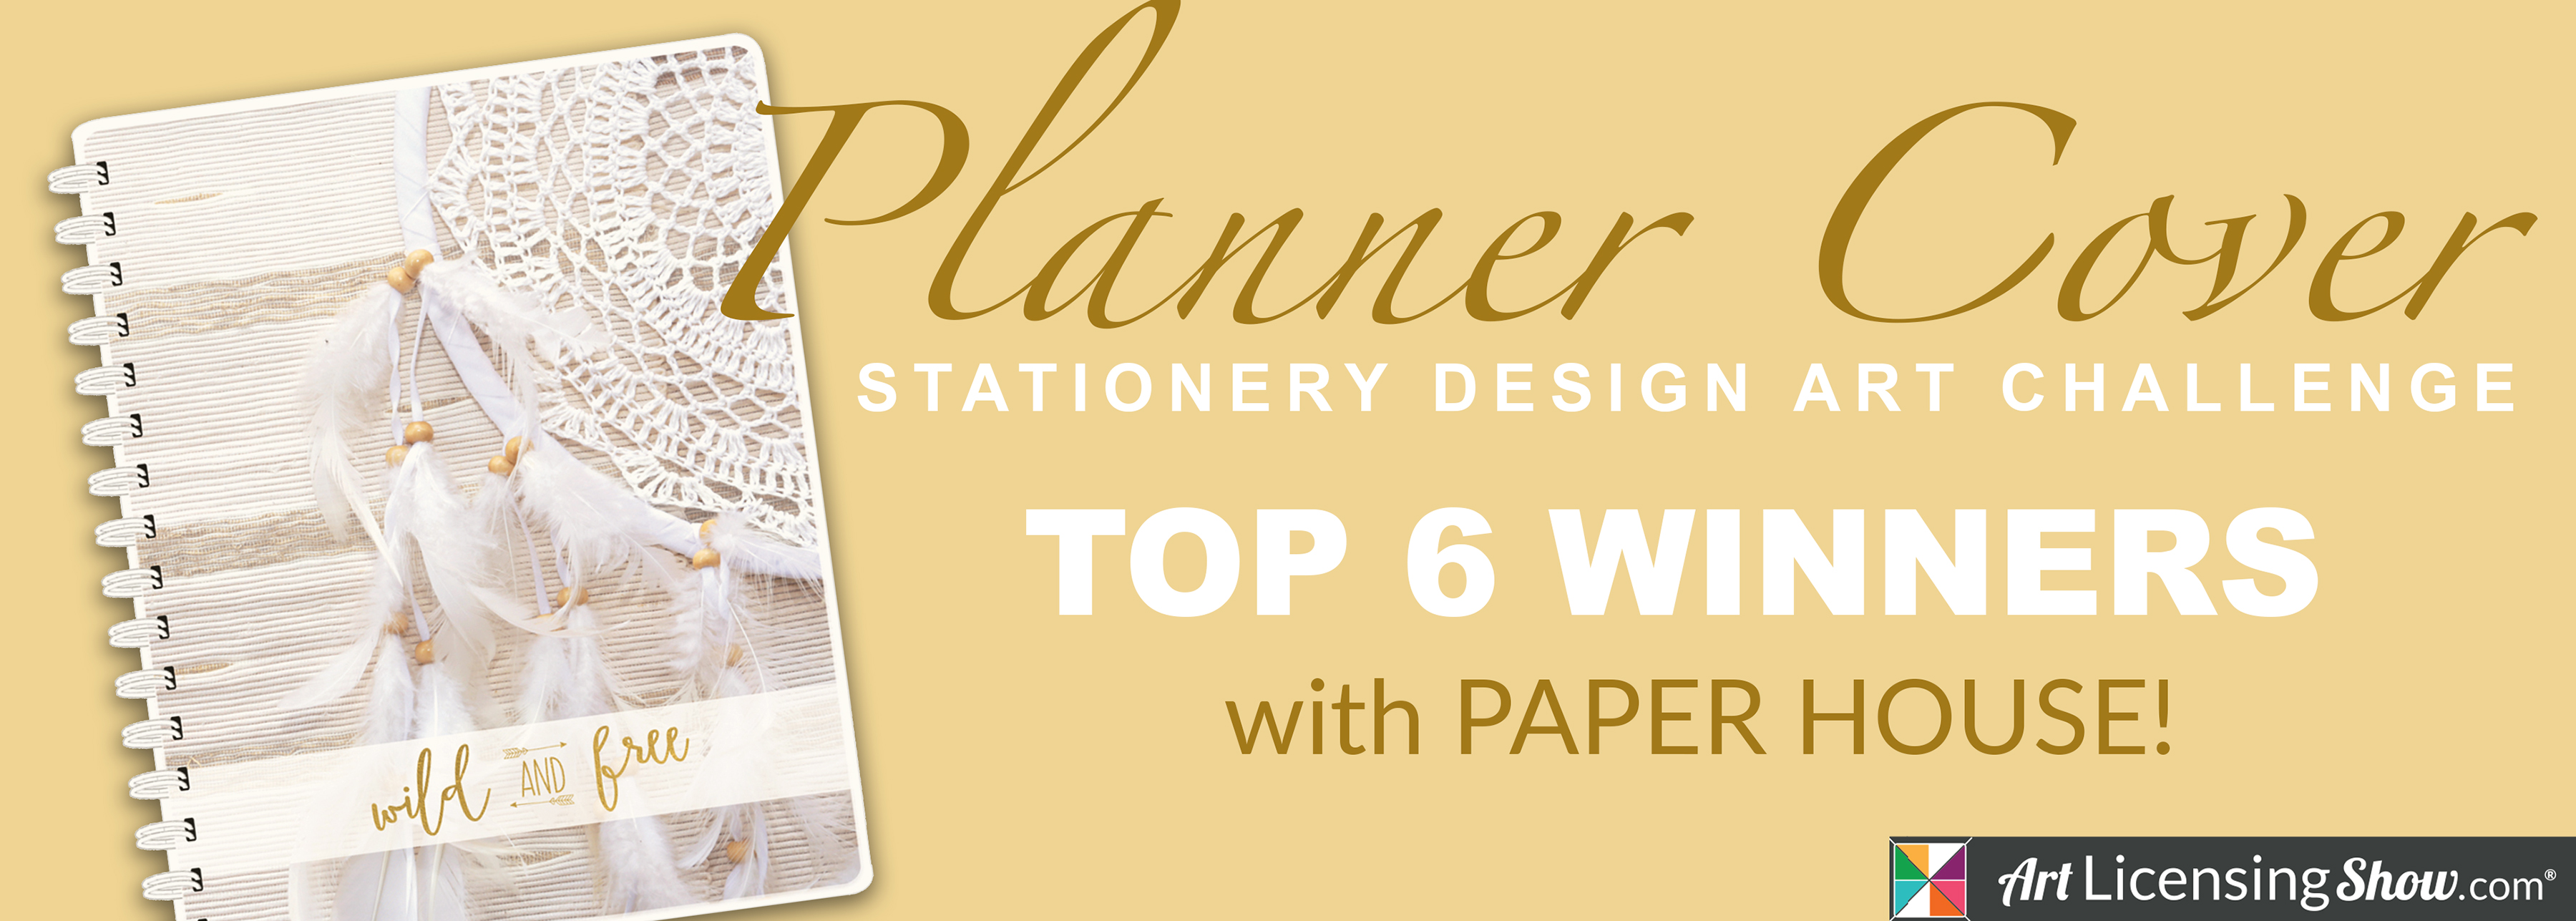 Art Licensing Show Paper House Planner Cover Art Challenge